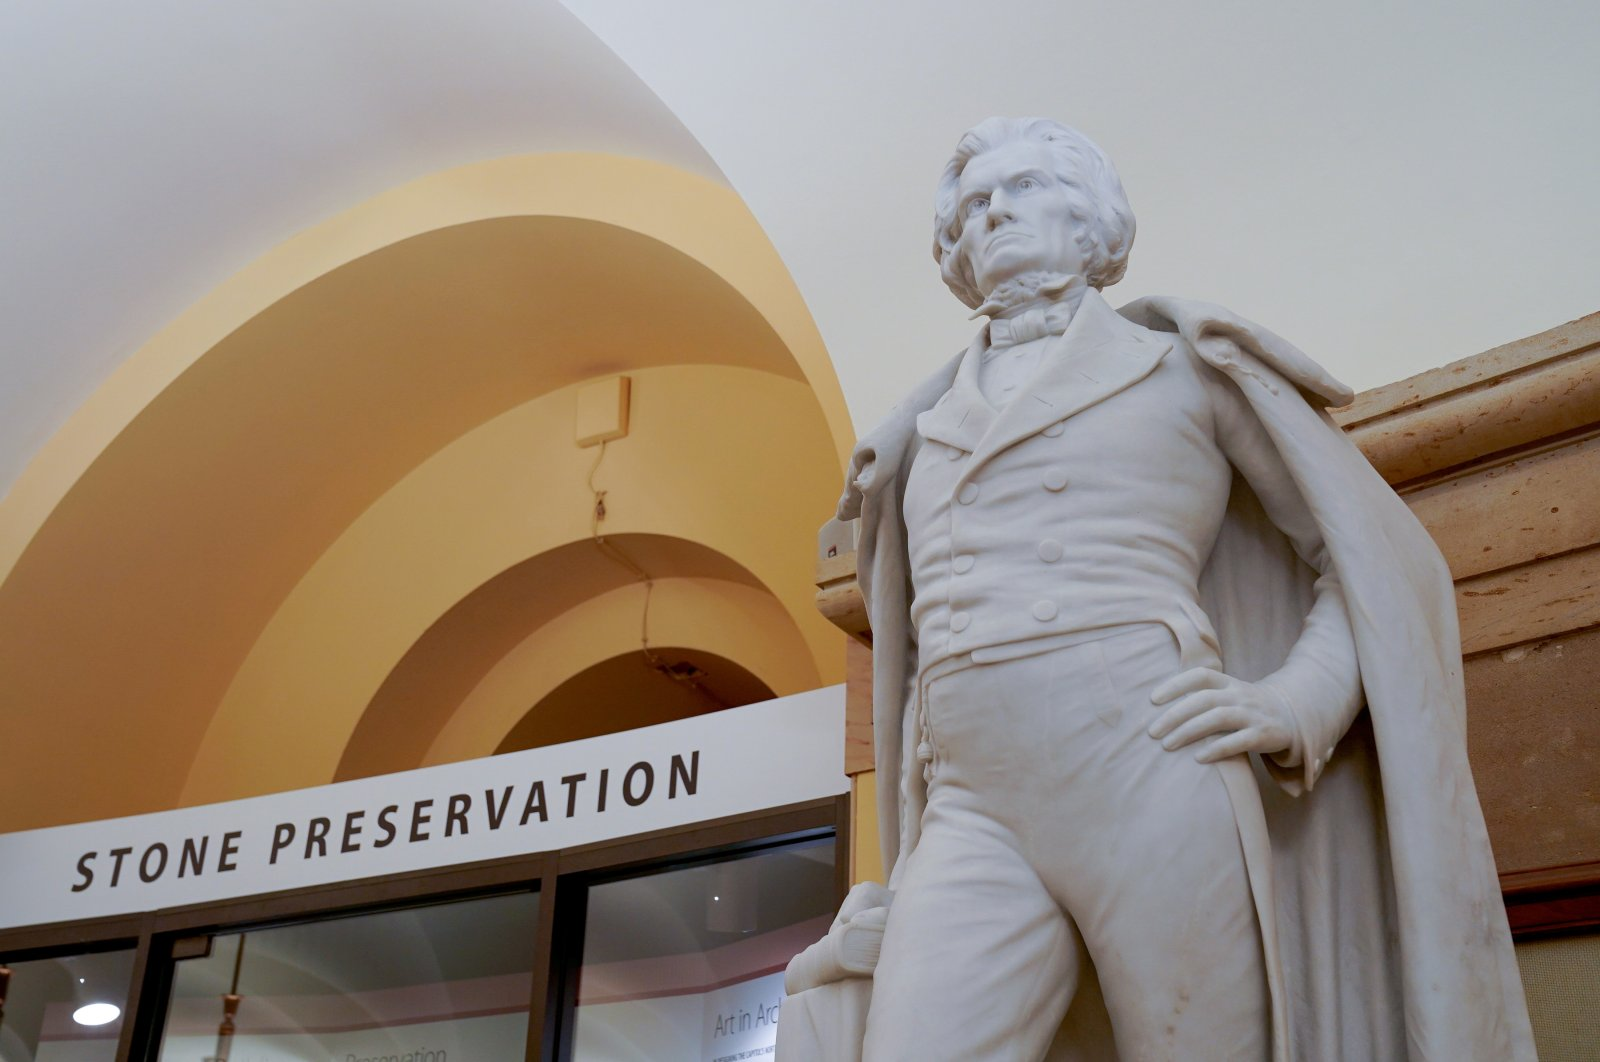 A statue of slavery advocate John C. Calhoun in the U.S. Capitol, Washington, U.S., July 23, 2020. (Reuters Photo)